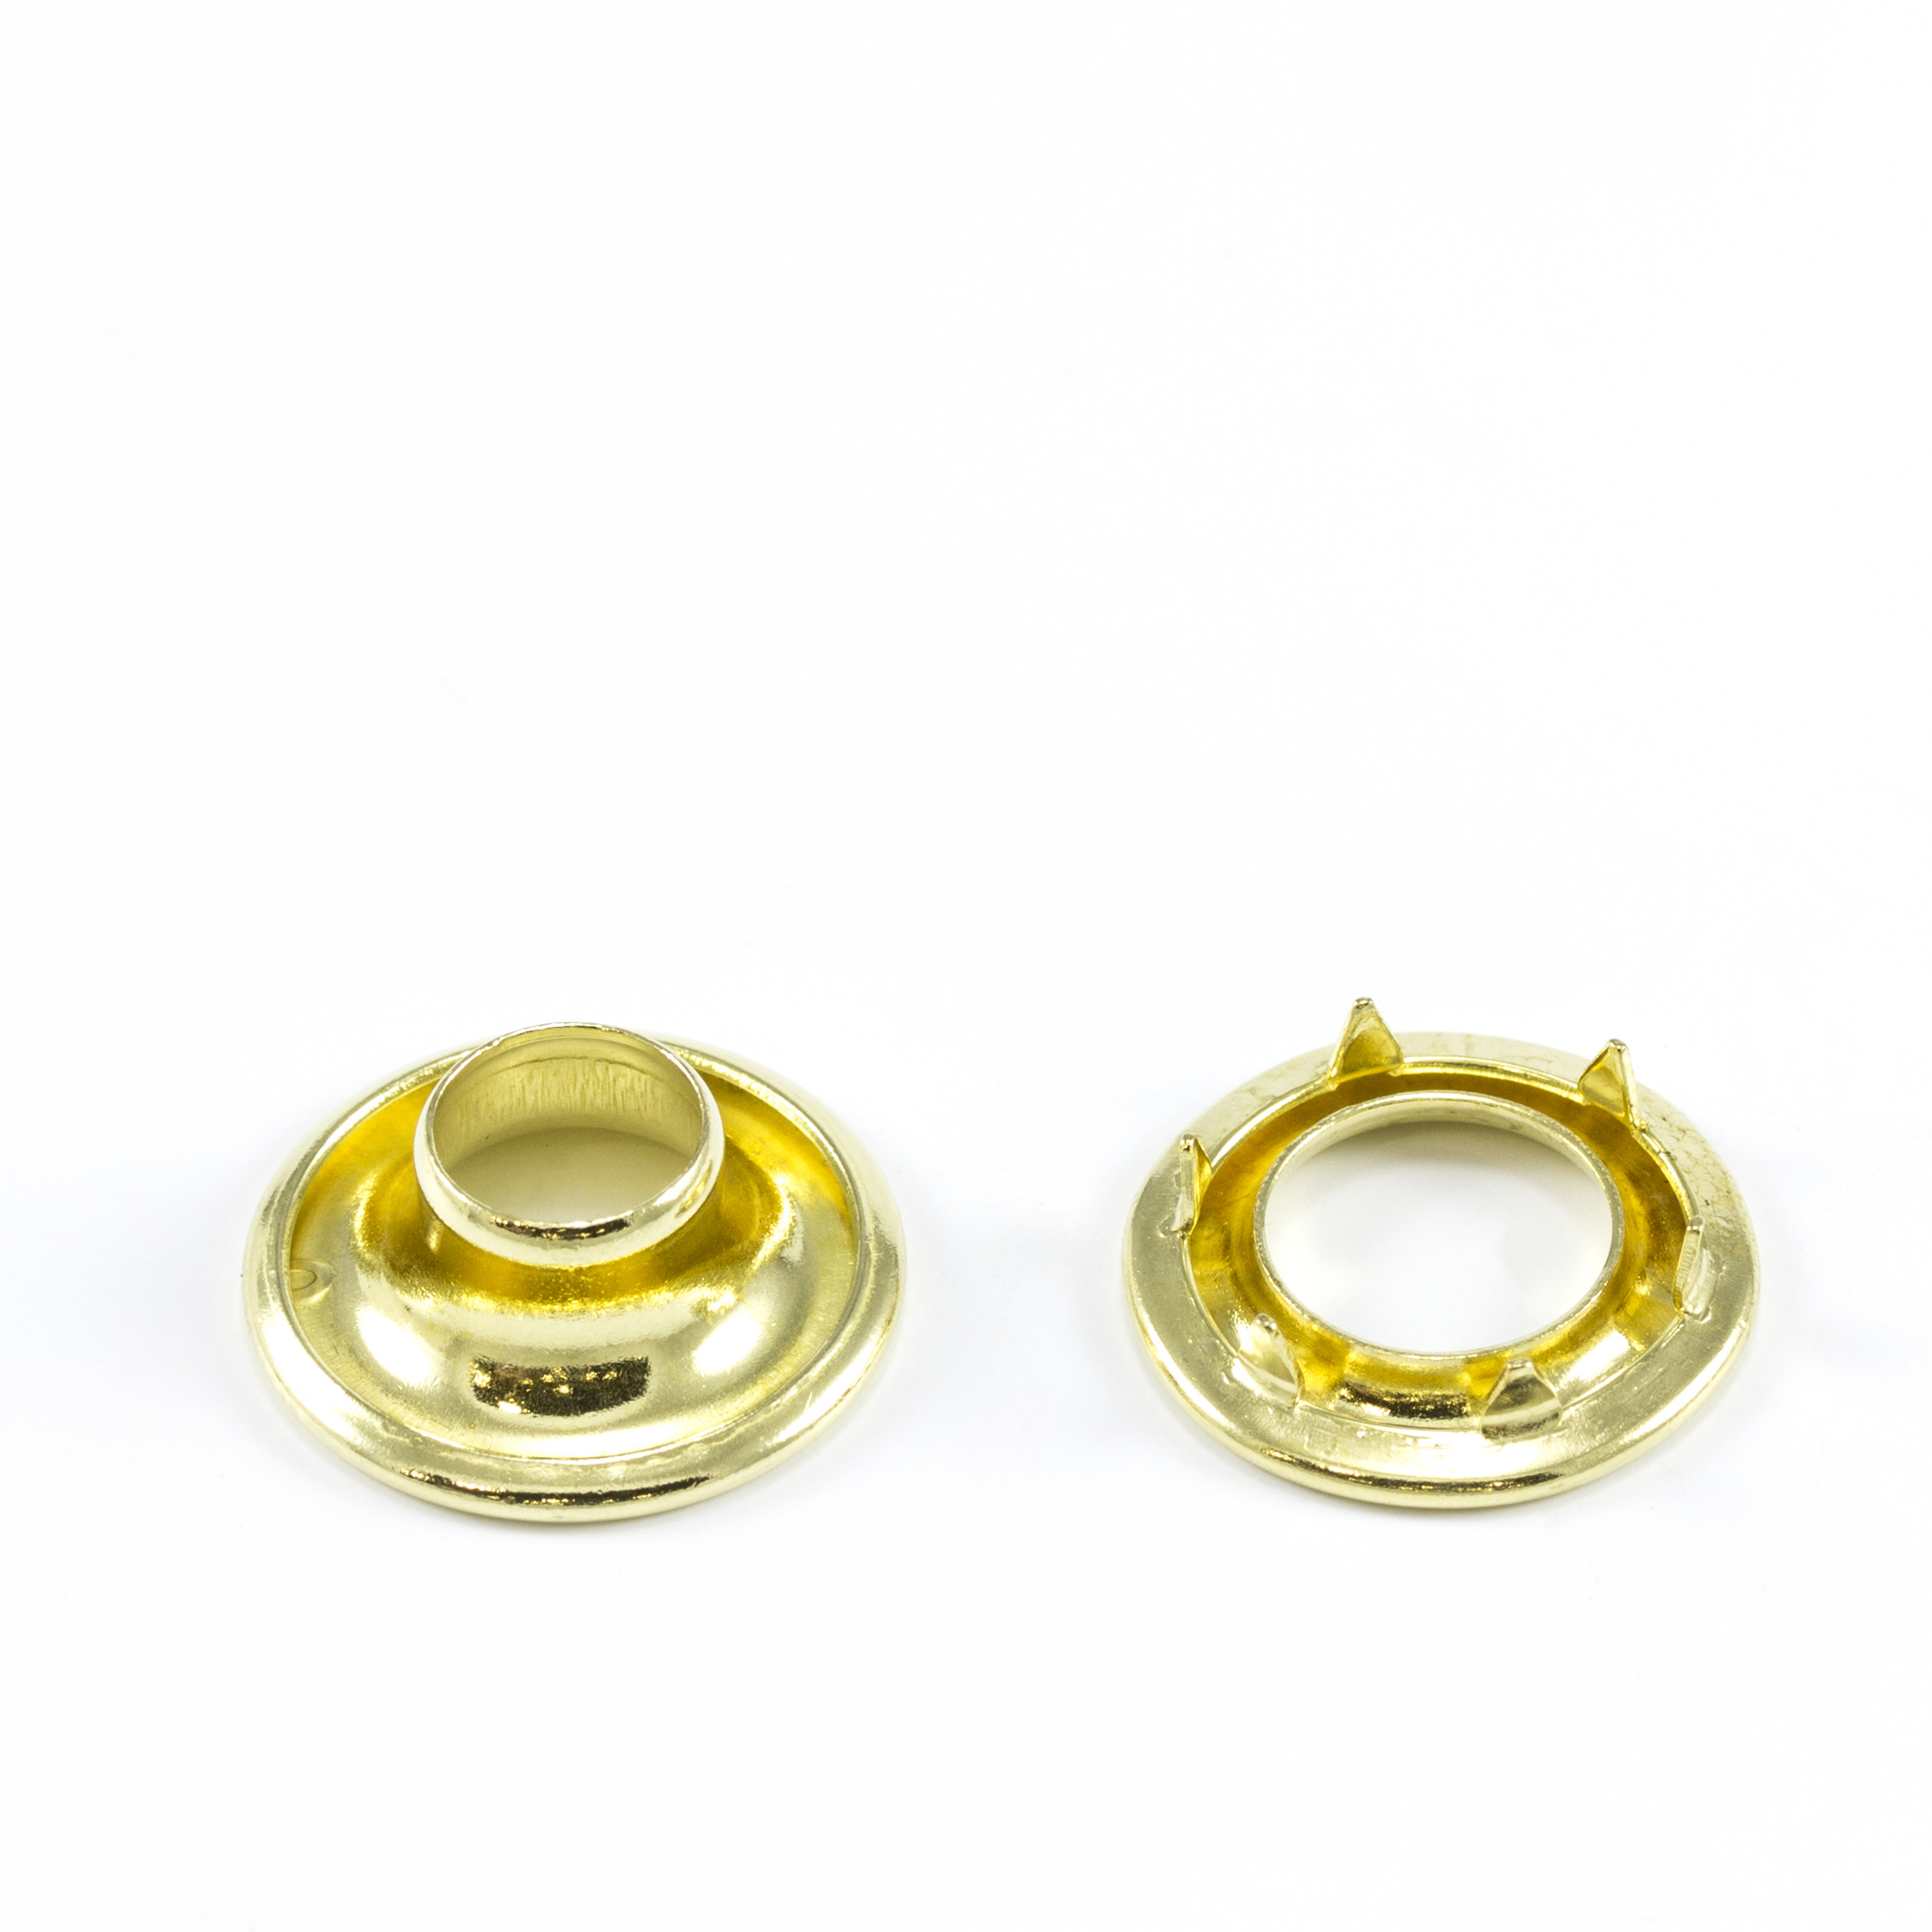 Rolled Rim Grommet with Spur Washer #0 Brass 9/32